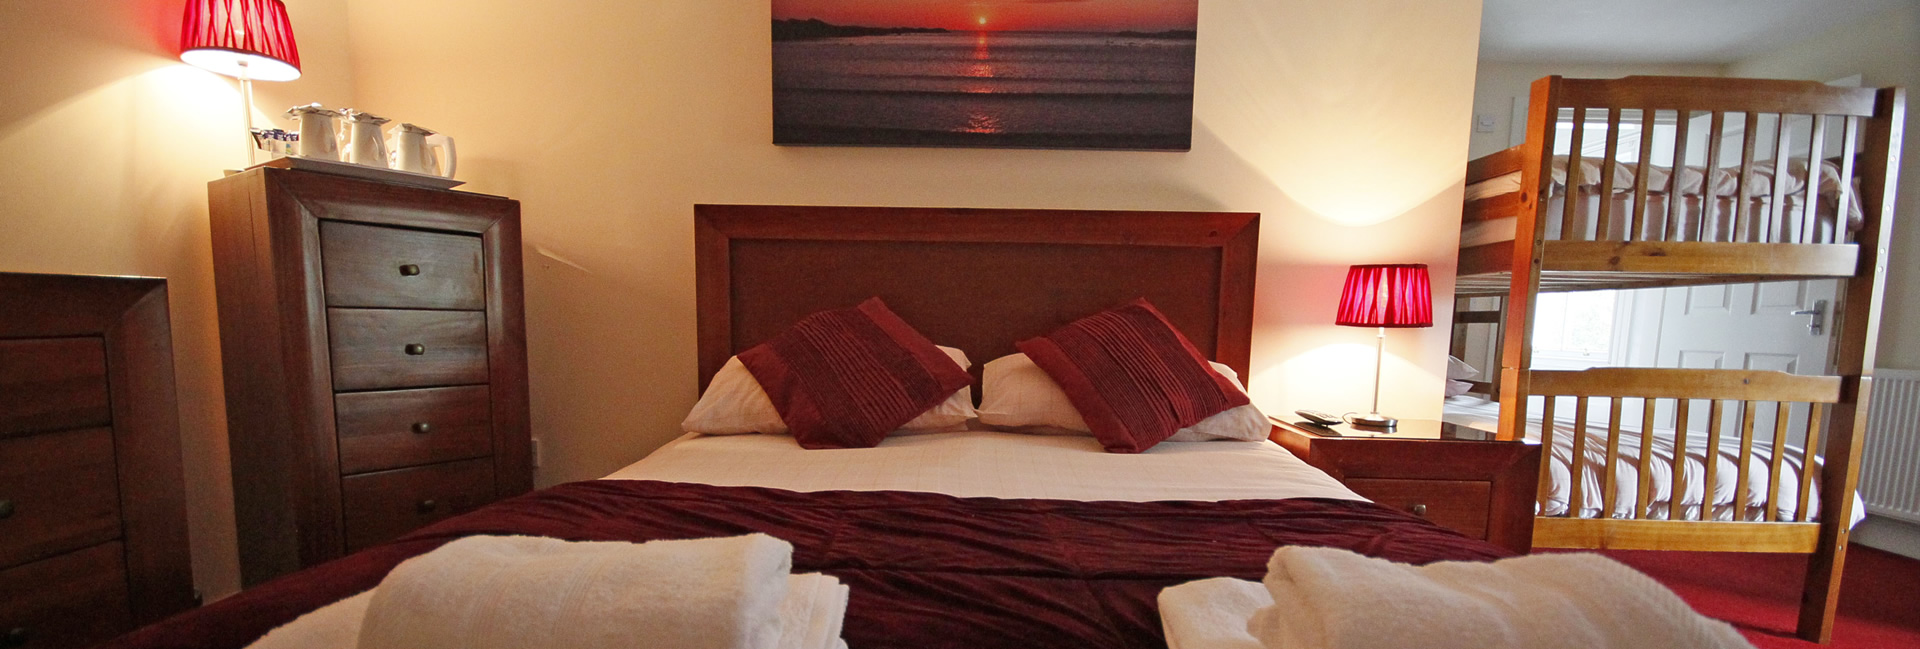 Bedroom accommodation, Elphinstone Hotel, Biggar